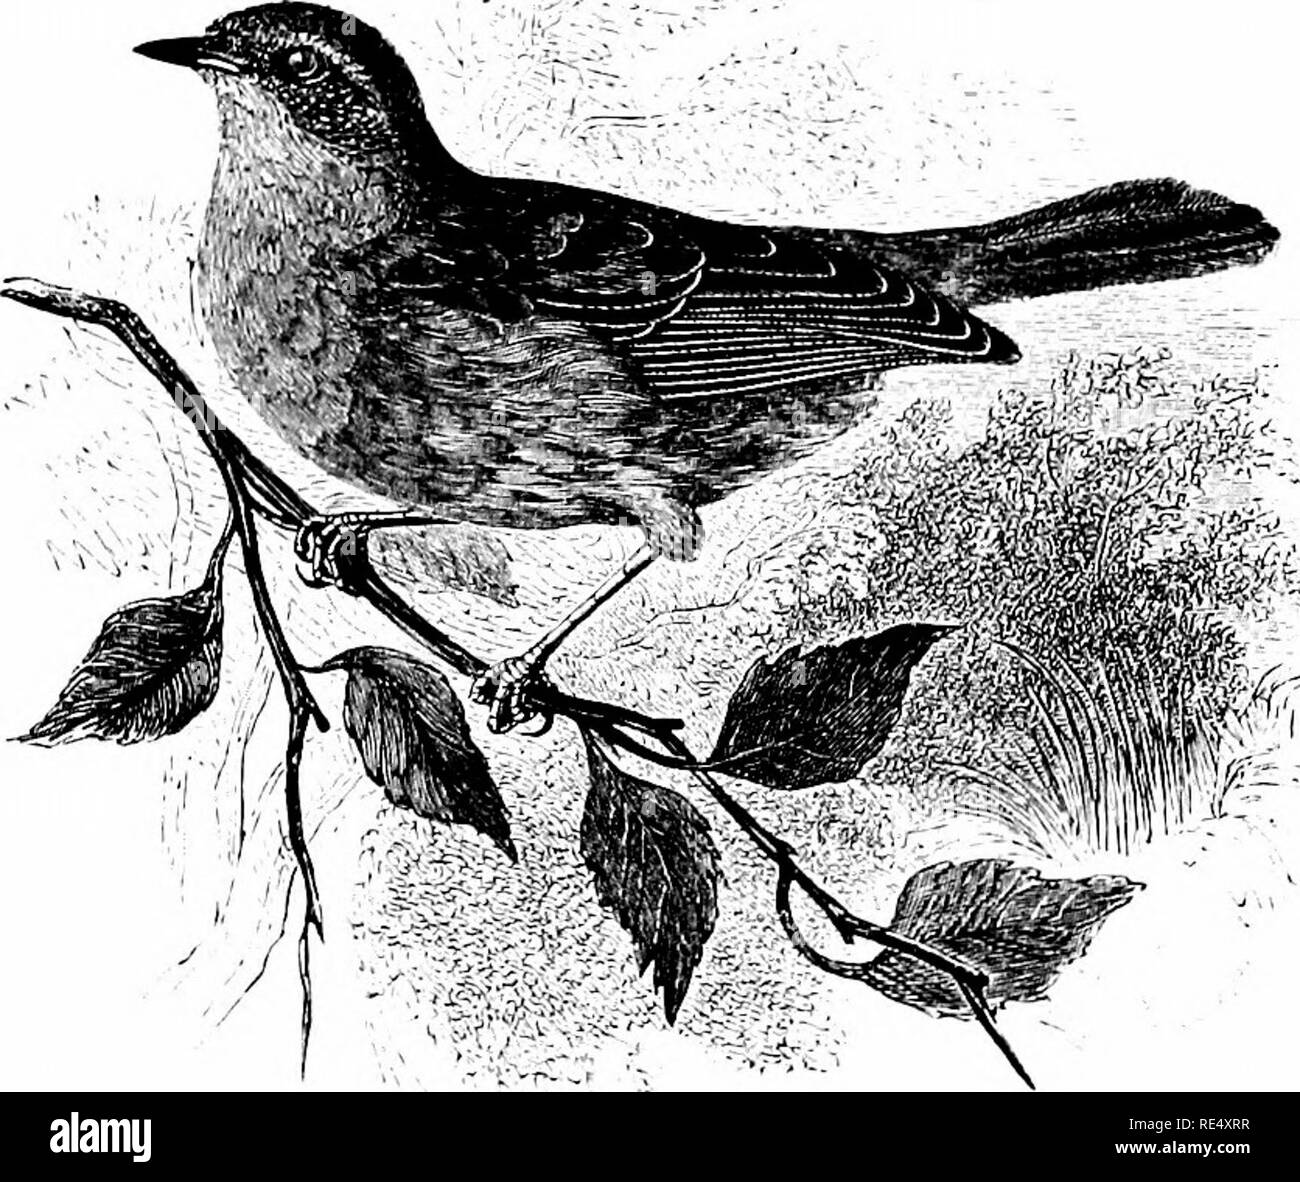 . An illustrated manual of British birds. Birds. ACCENTORIN/E. 93. THE HEDGE-SPARROW. Accentor modularis (Linnoeus). The Hedge-Sparrow is resident and generally distributed through- out the British Islands : the exceptions being the bleakest of the Outer Hebrides and the Shetlands, for in the Orkneys it has bred since 1887, and is increasing. In Sutherland and Caithness it is extending its range wherever plantations are springing up ; while in winter it comes nearer to houses, where a more plentiful supply of food is attainable. On the east coast it is a regular migrant, extraordinary numbers  - Stock Image